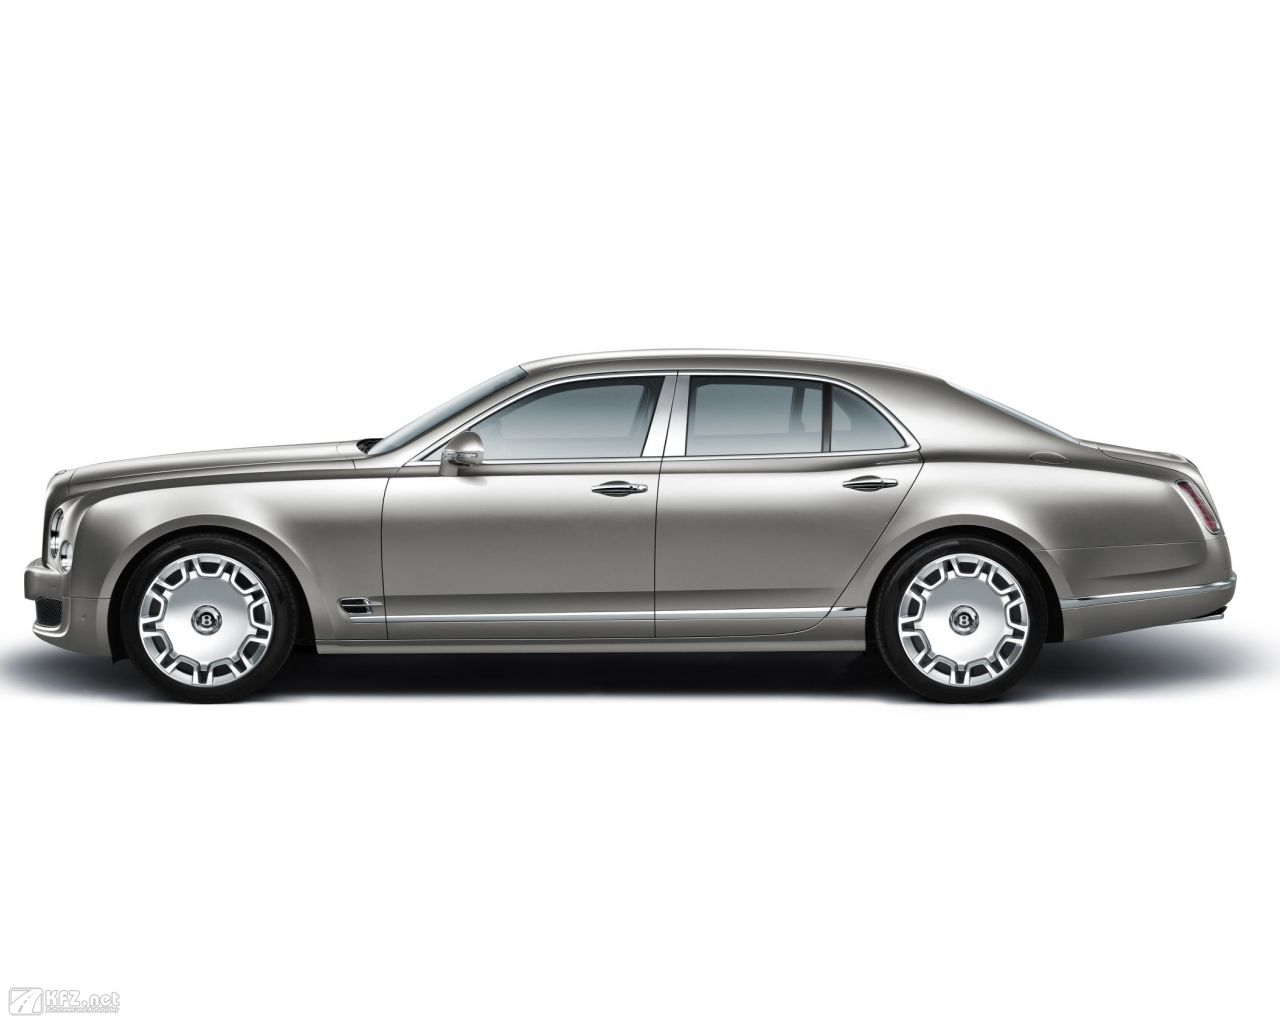 bentley-mulsanne-1280x1024-11